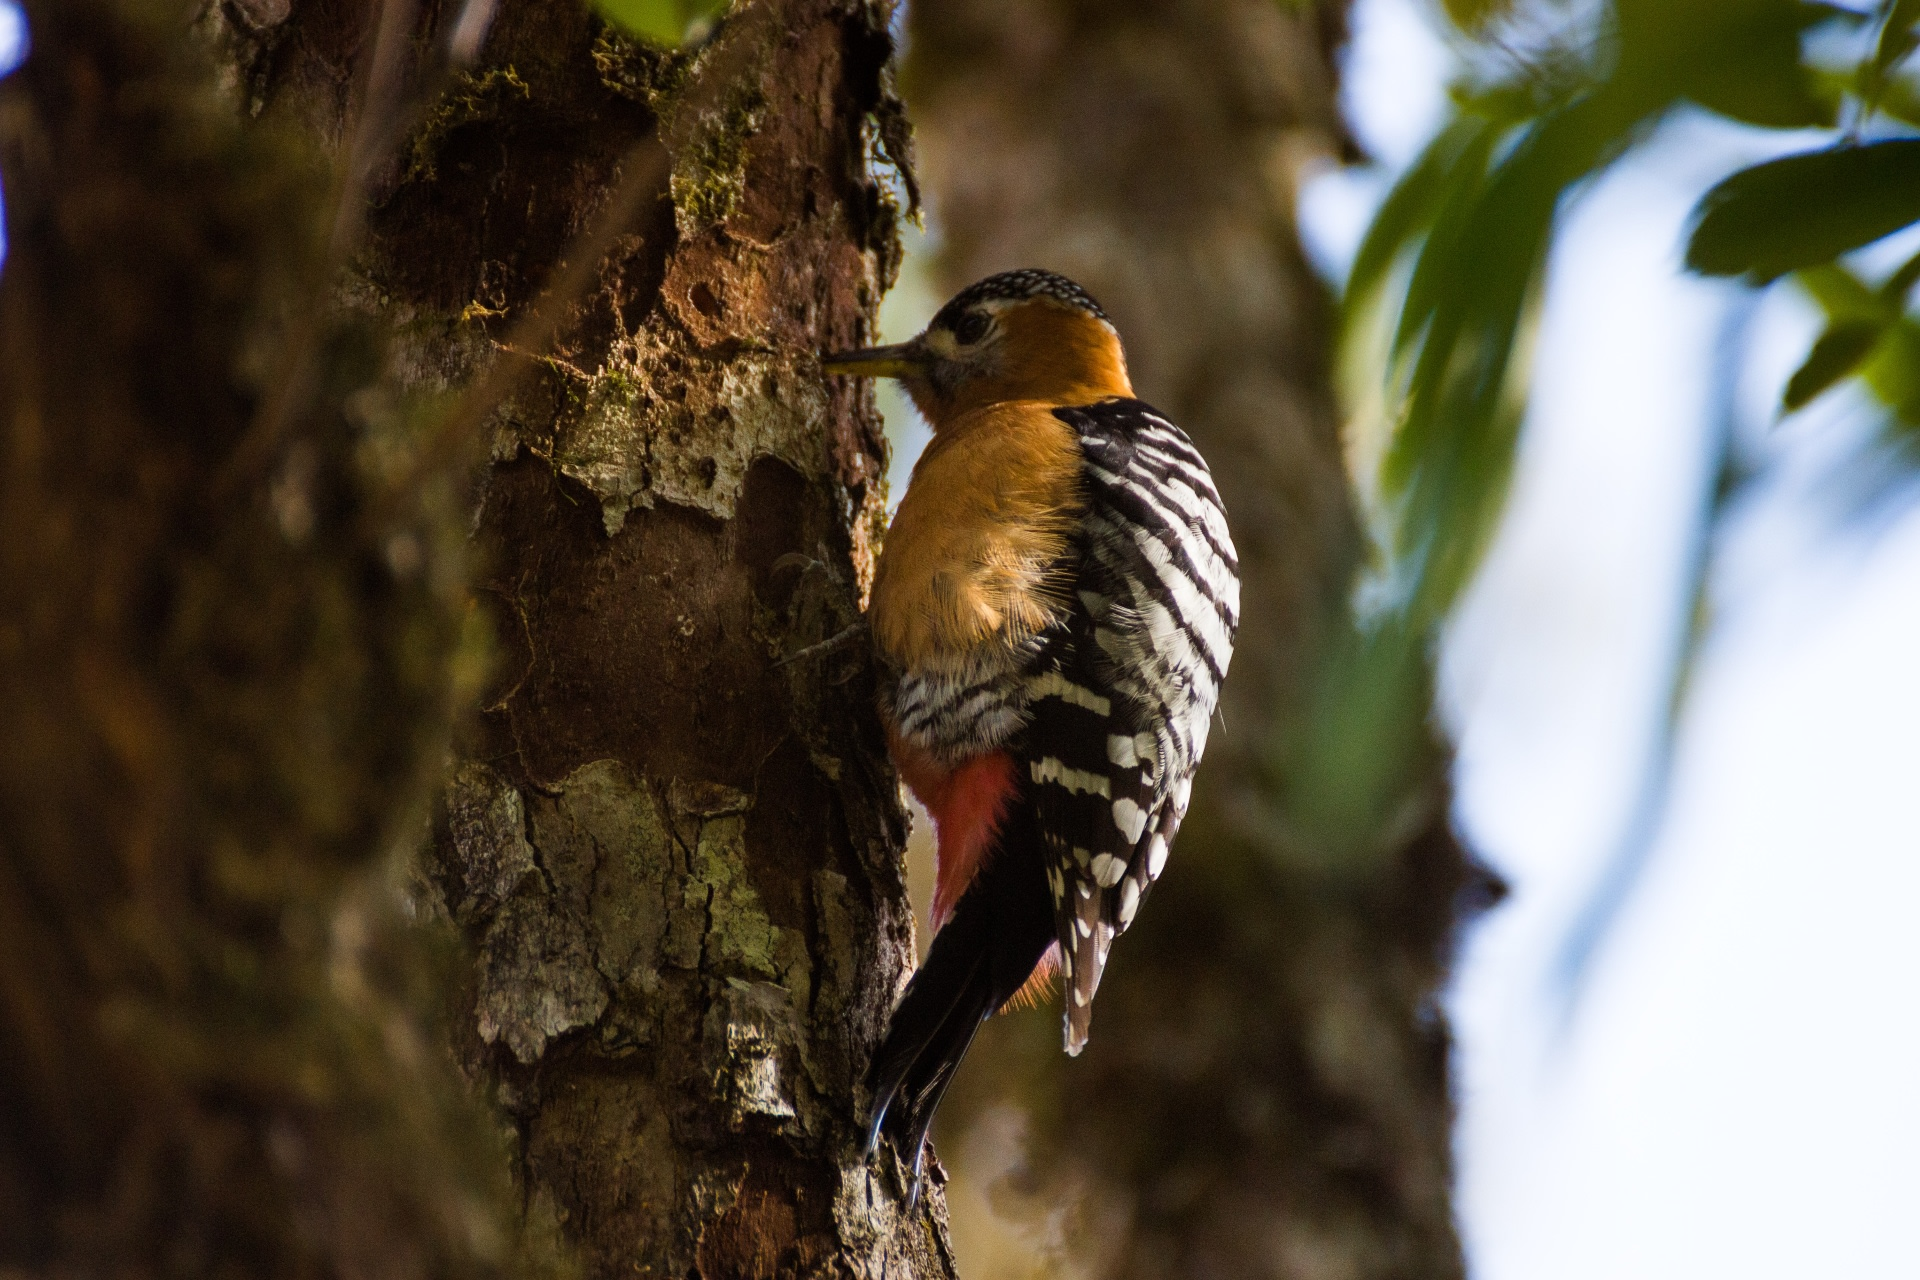 A female rufous-bellied woodpecker can be identified by its black crown and the absence of the bright red on its head. Photo: Tarun Menon